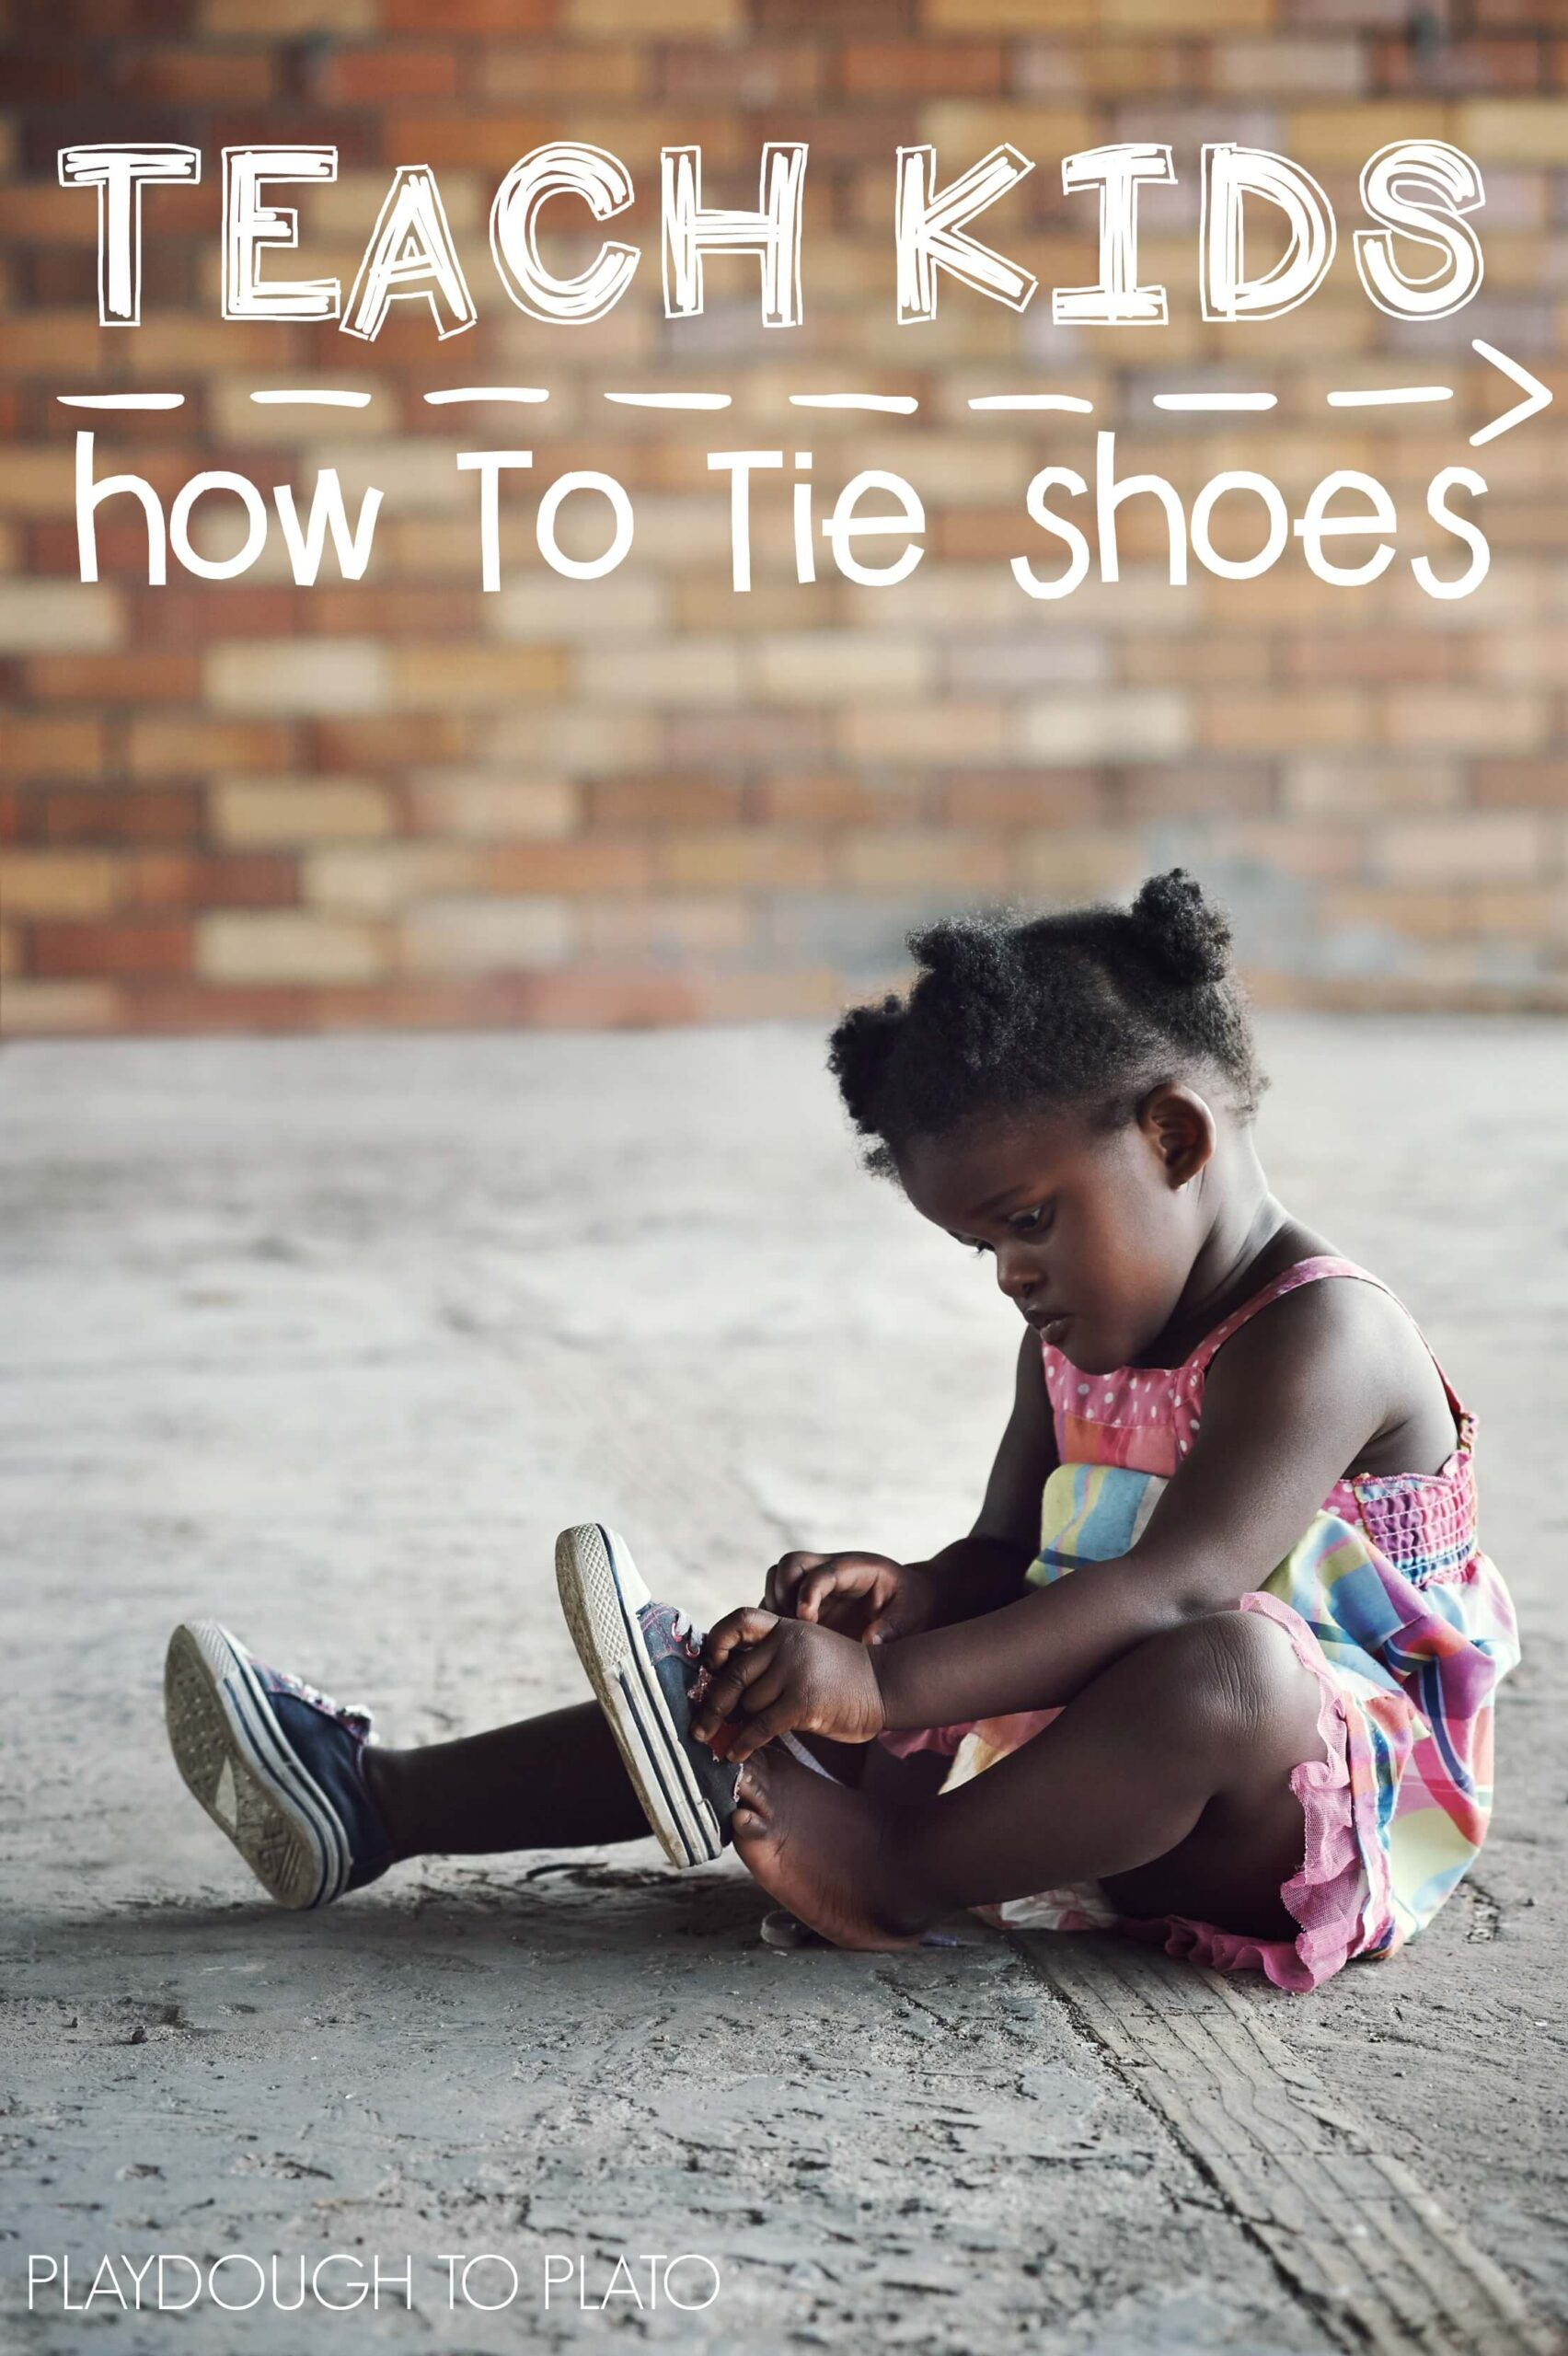 Teach Kids to Tie Shoes